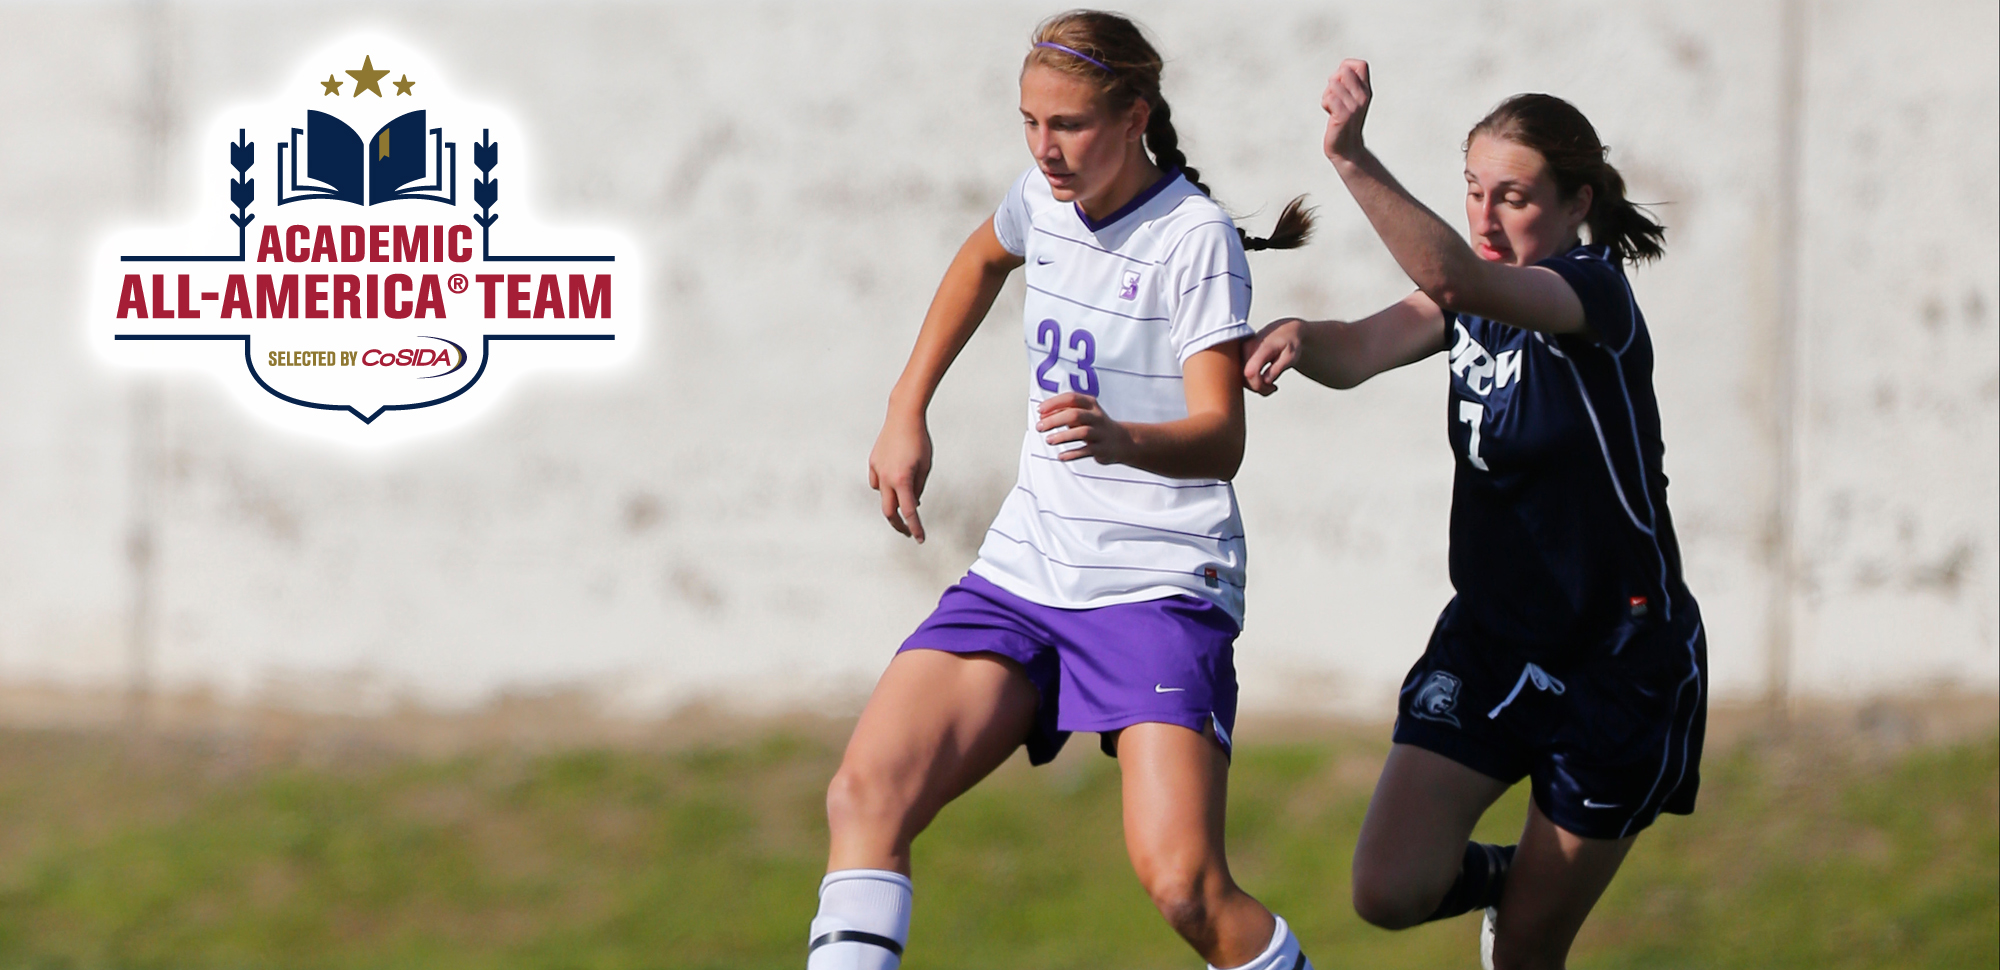 Erin Casey becomes the women's soccer player in Scranton history to earn Academic All-American honors.